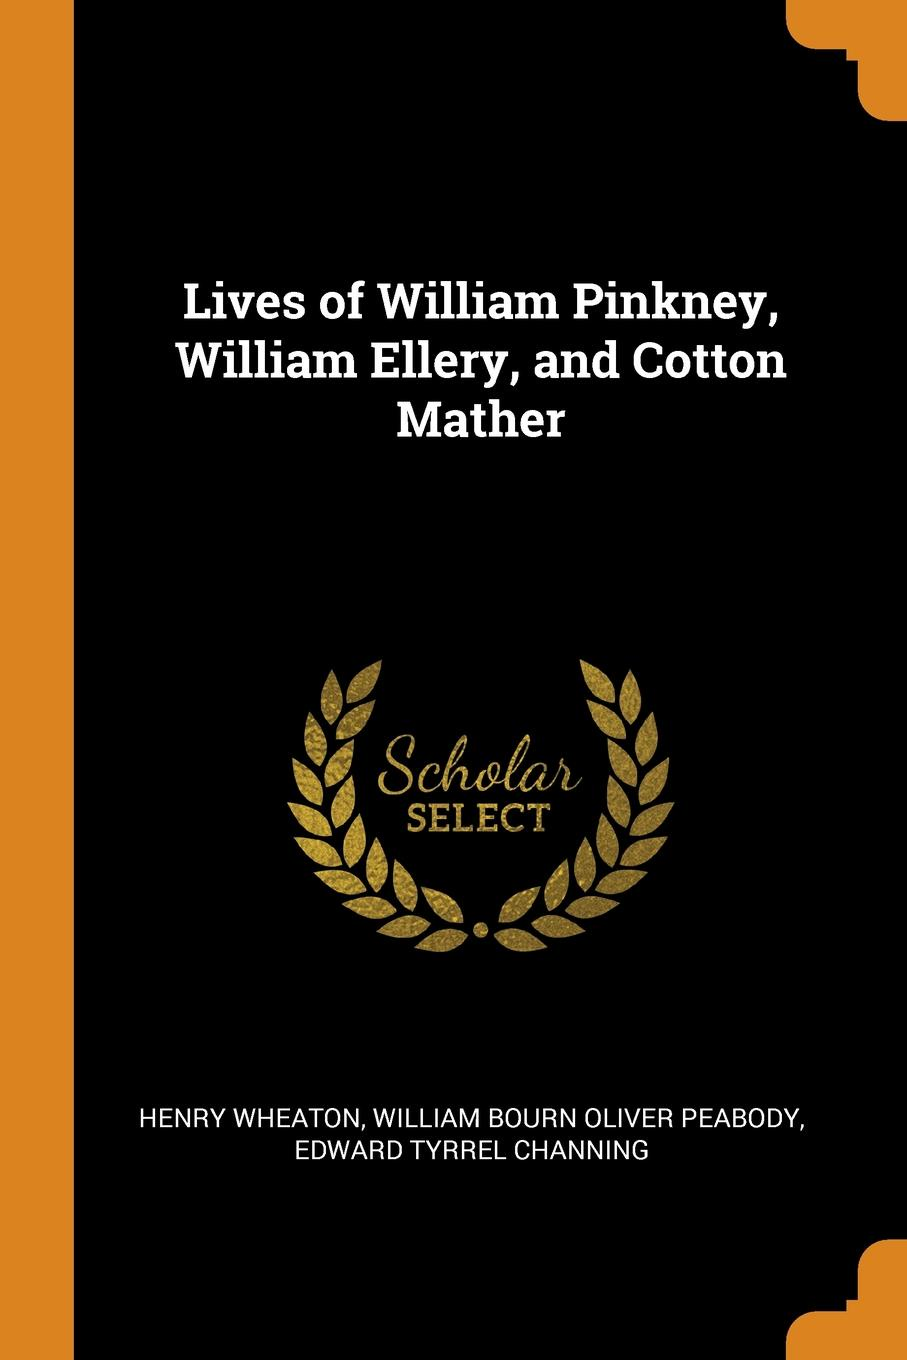 Lives of William Pinkney, William Ellery, and Cotton Mather. Henry Wheaton, William Bourn Oliver Peabody, Edward Tyrrel Channing